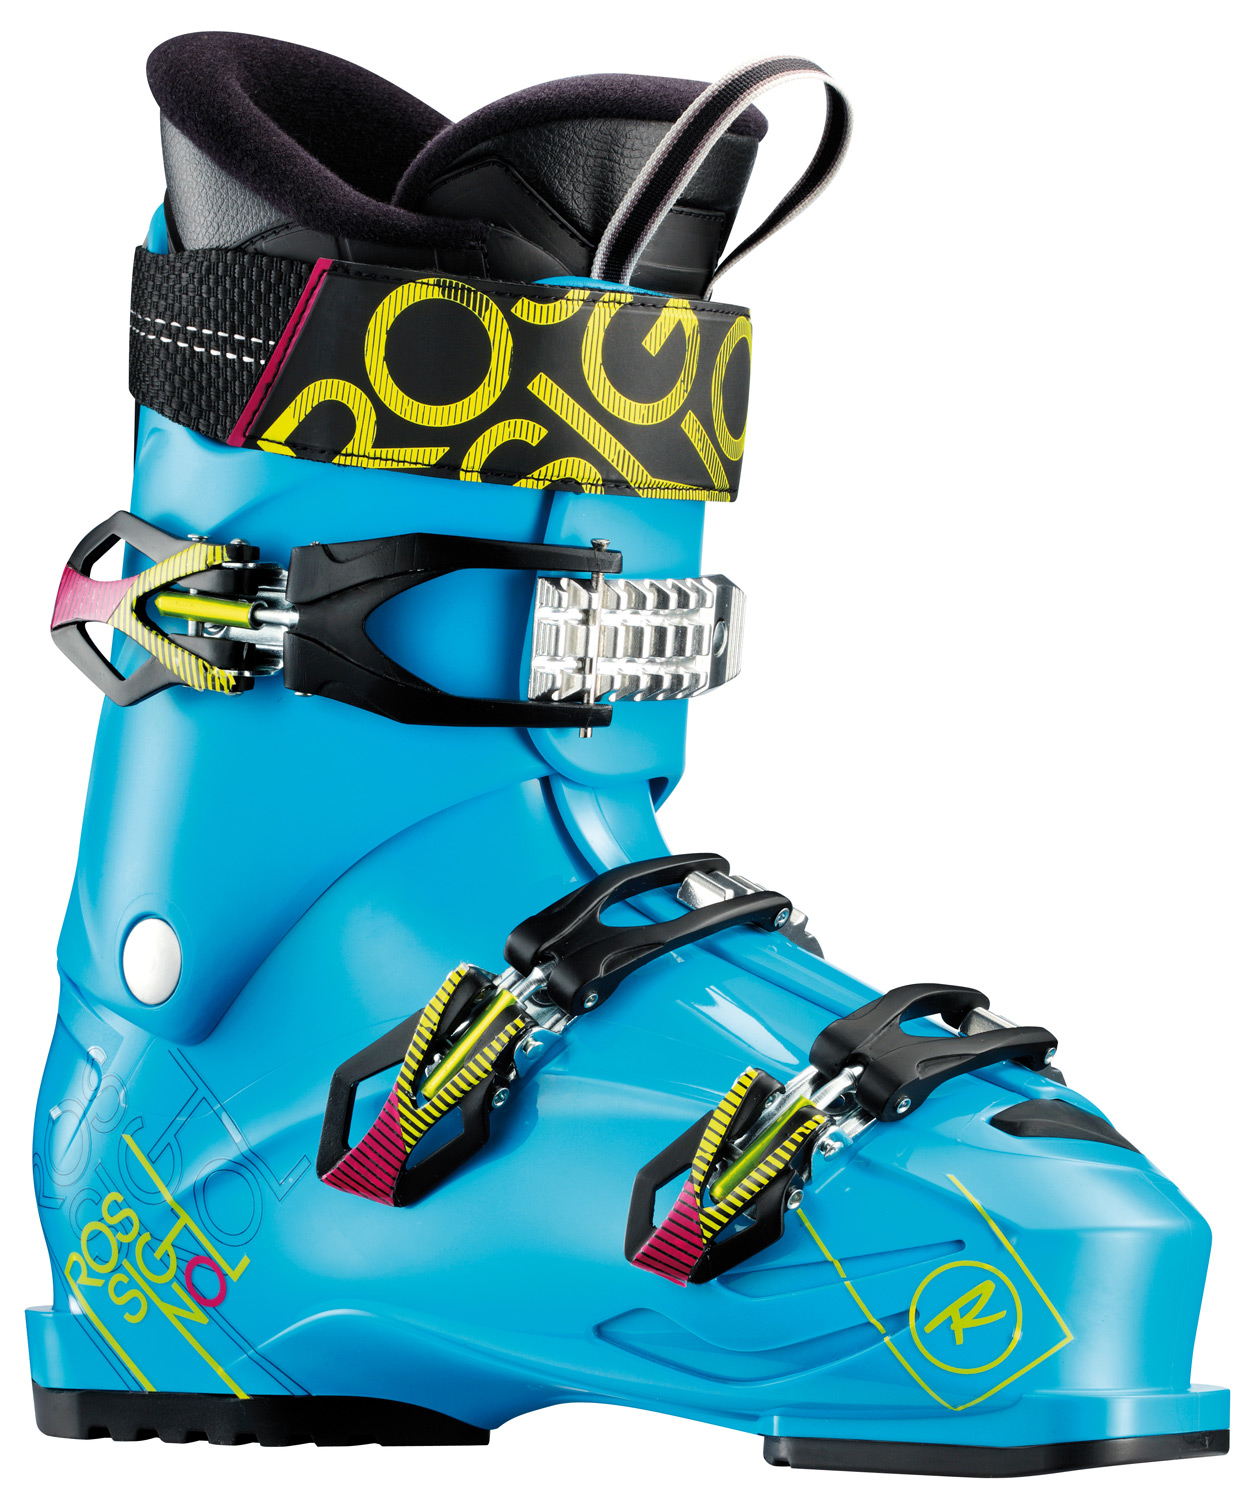 Ski TMX combines fresh new style with award-winning Sensor Fit technology for today's freestyle skiers. Featuring the all-new Sensor, Sensor, and junior shells, TMX boots deliver contoured fit, a strong heel cup and asymmetrical toe box. Sensor Fit liners provide accommodating insteps and more articulate ankle areas, increasing comfort, performance and warmth.Key Features of the Rossignol TMX 90 Ski Boots Cyan: last : 100 mm FLEX : 90 MATERIAL : POLYURETHANE PADDING : MOLDED PU HARD - $219.95